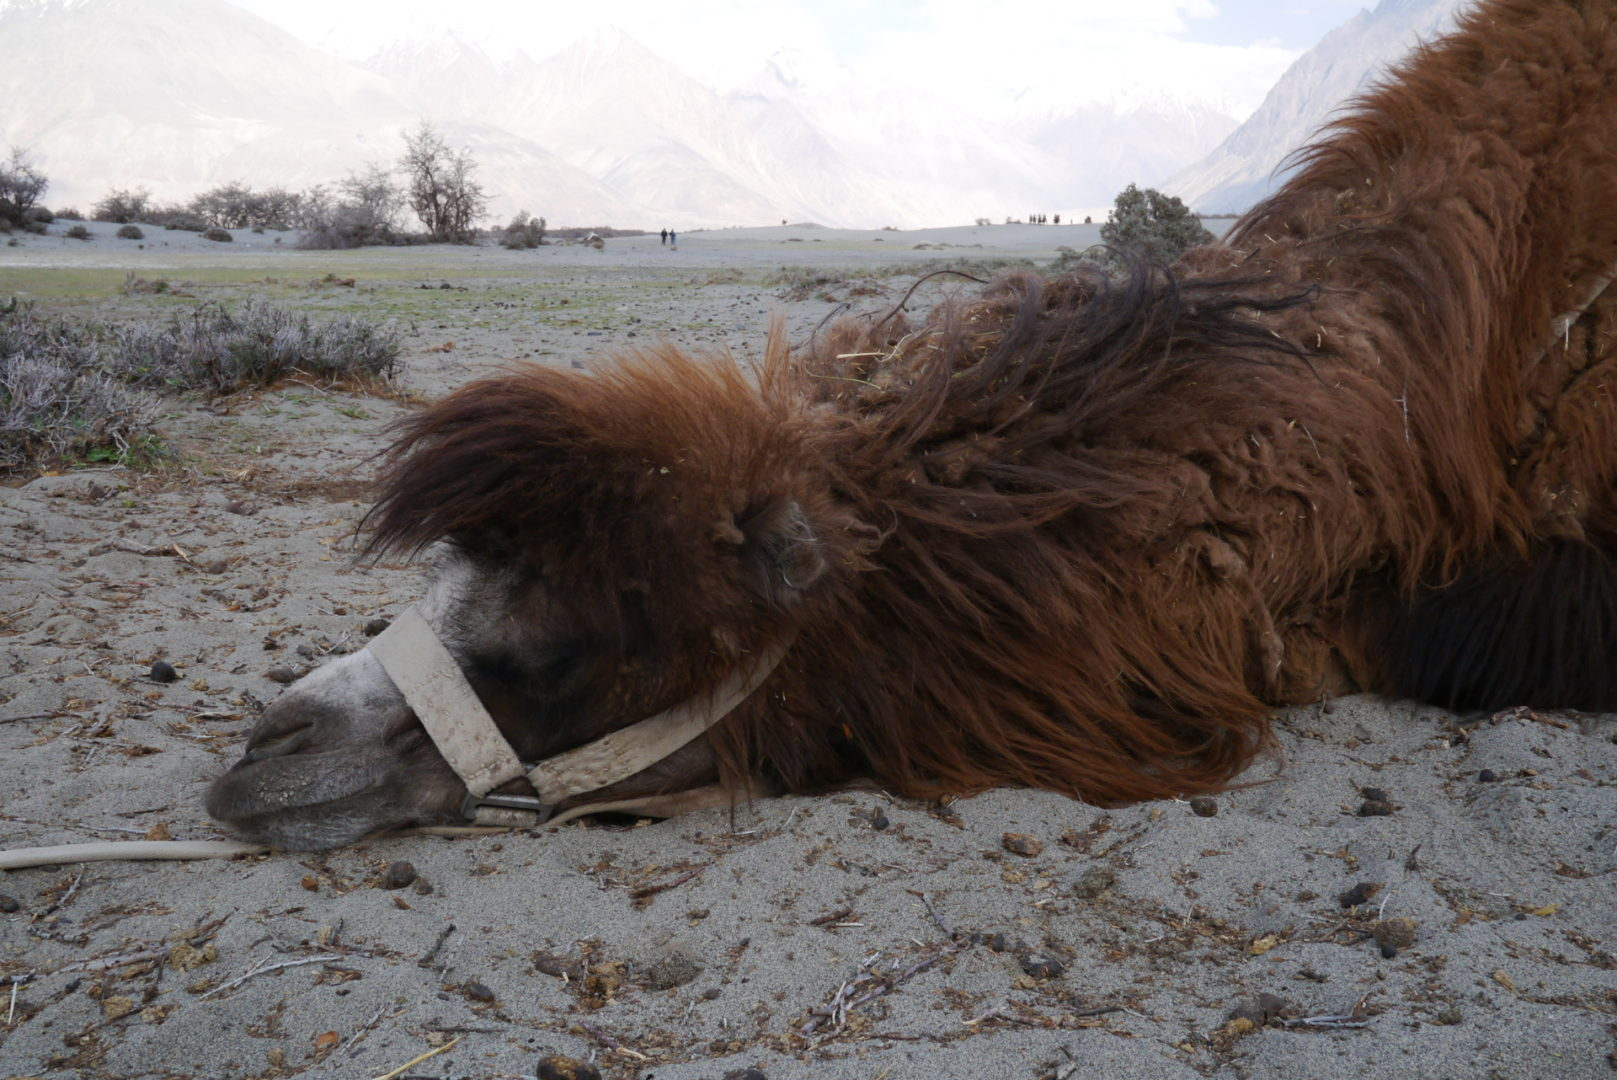 A tired bactrian camel after a long day of shuffling around tourists.